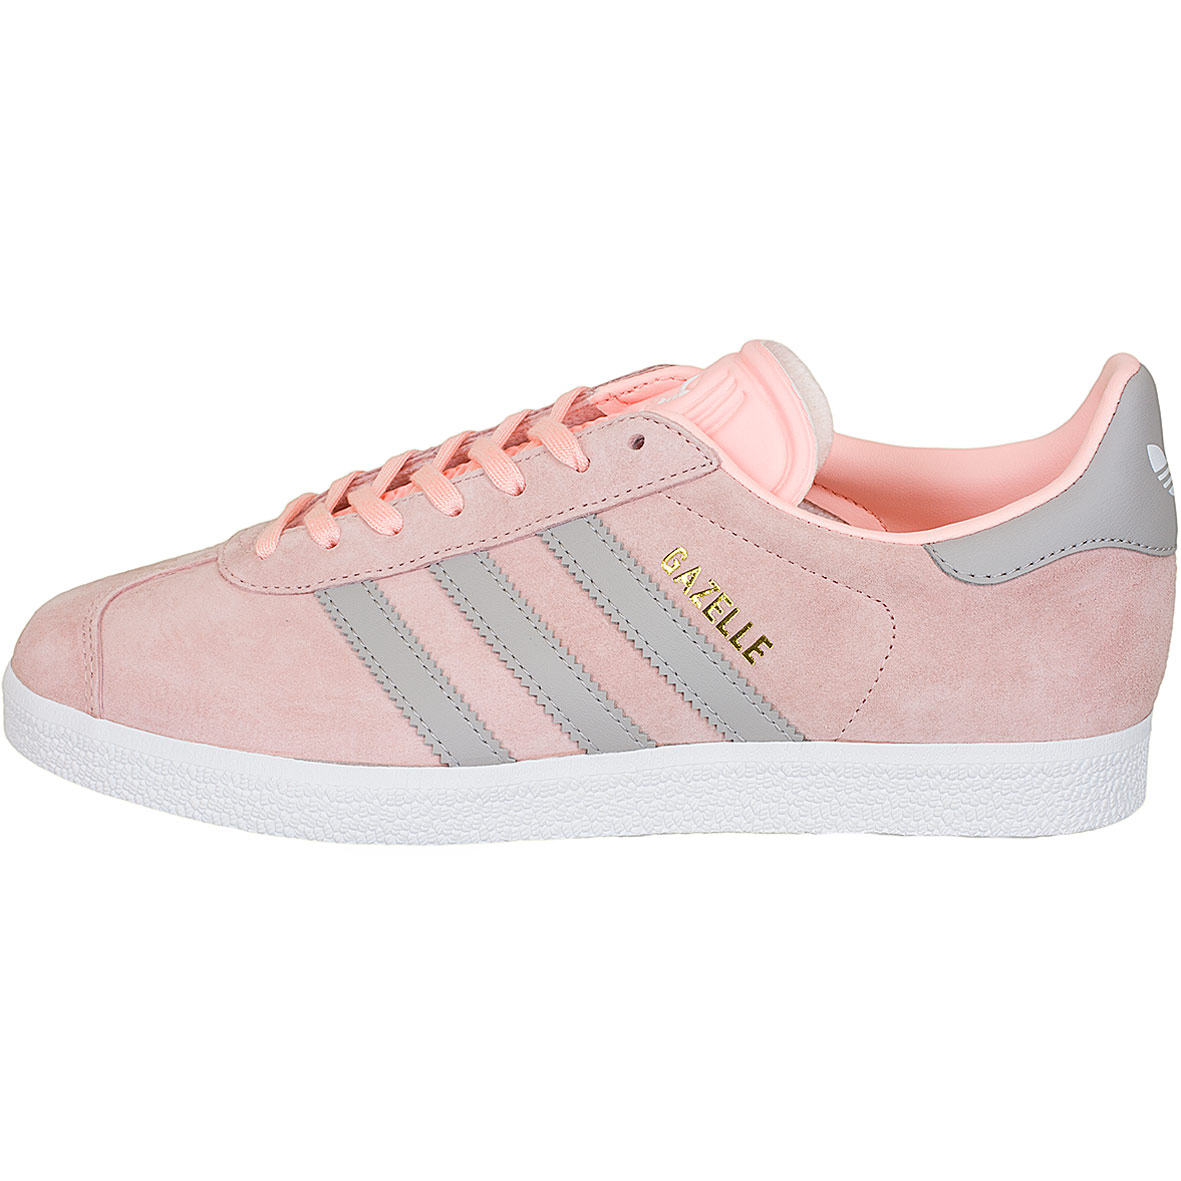 adidas gazelle damen rose